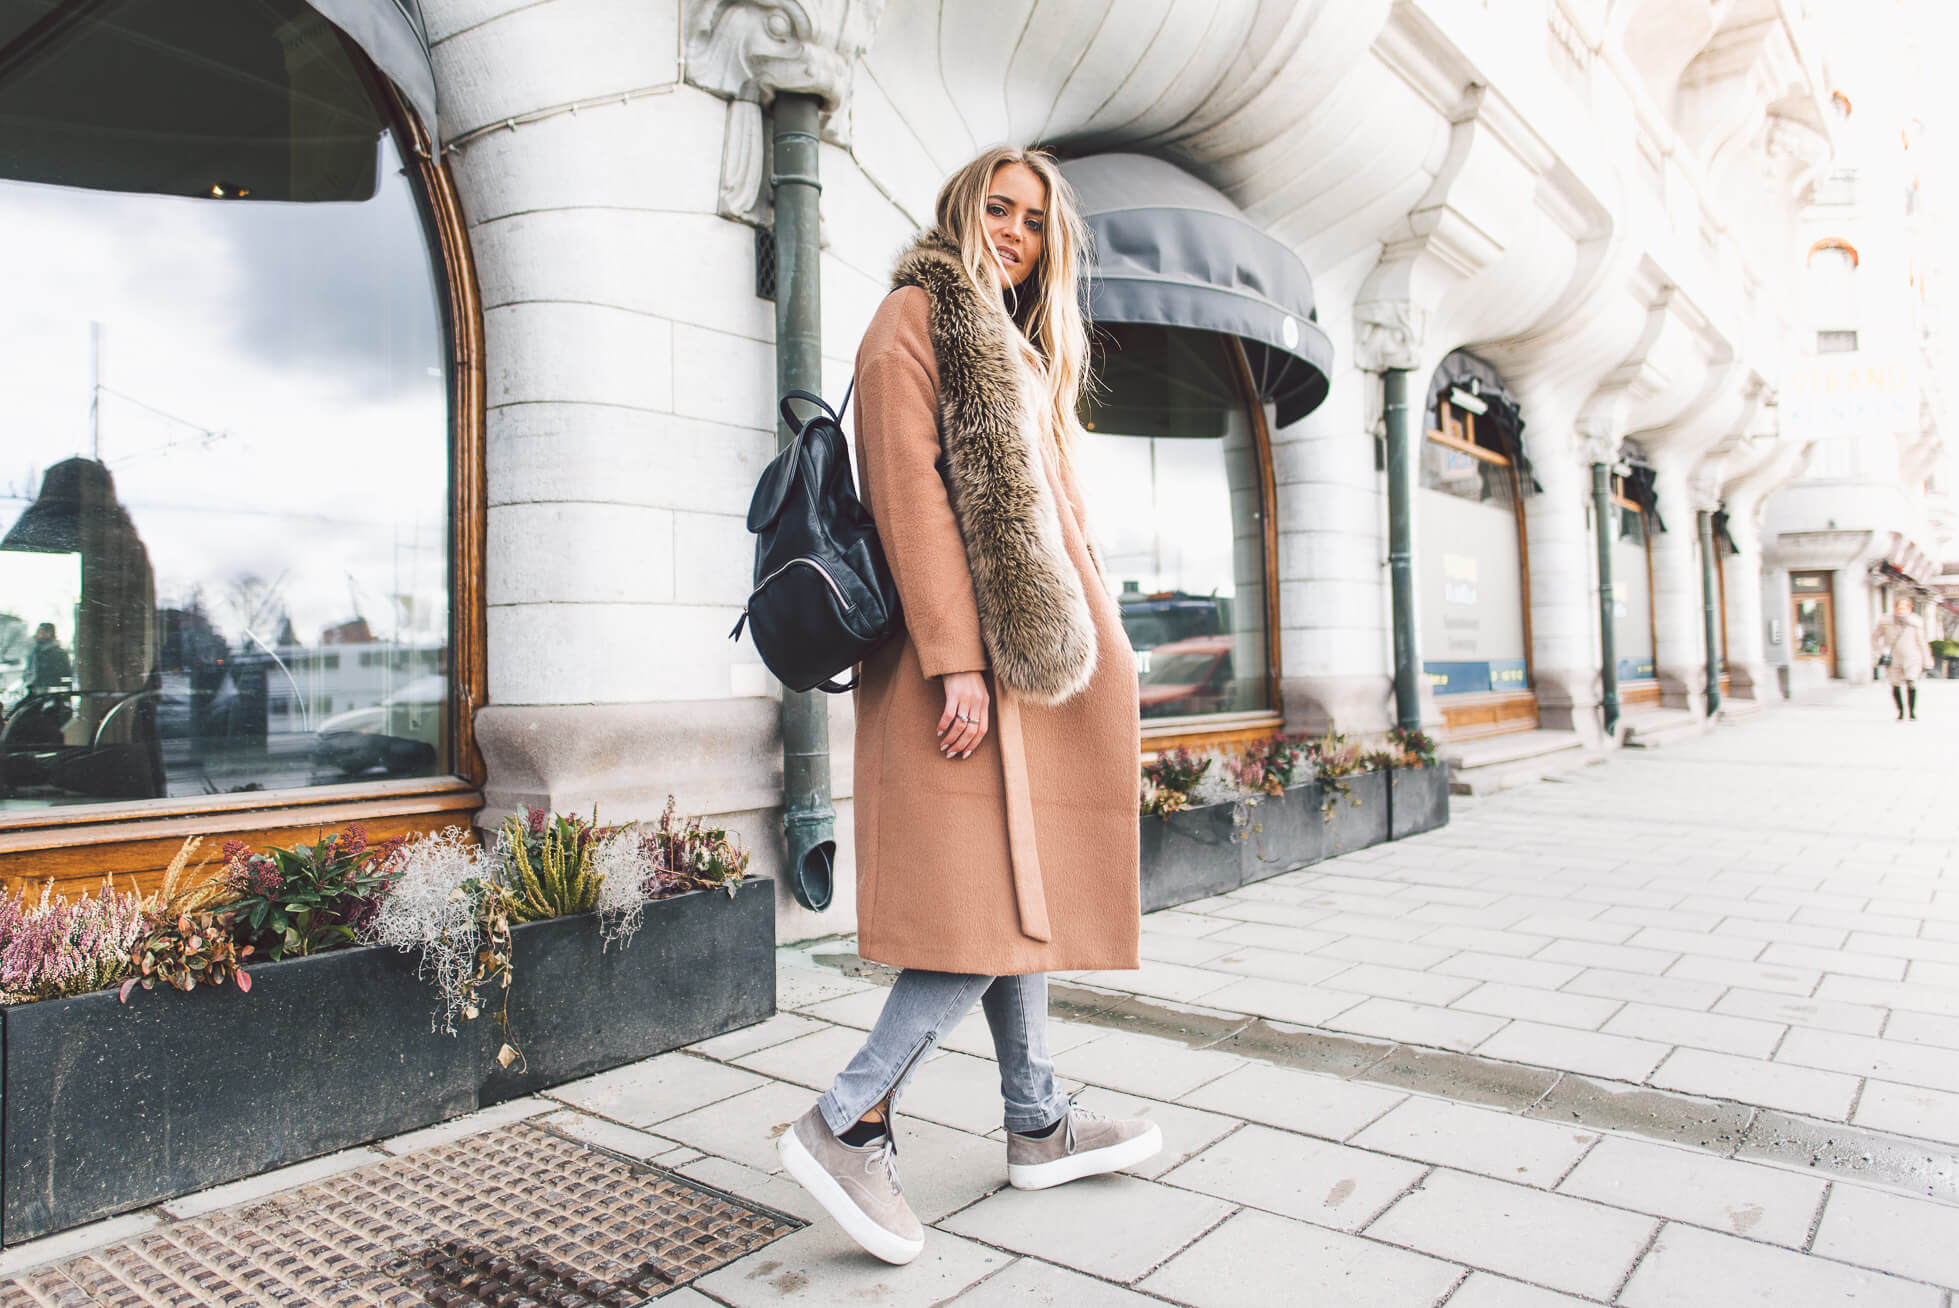 janni-deler-city-vibes-outfitDSC_8644